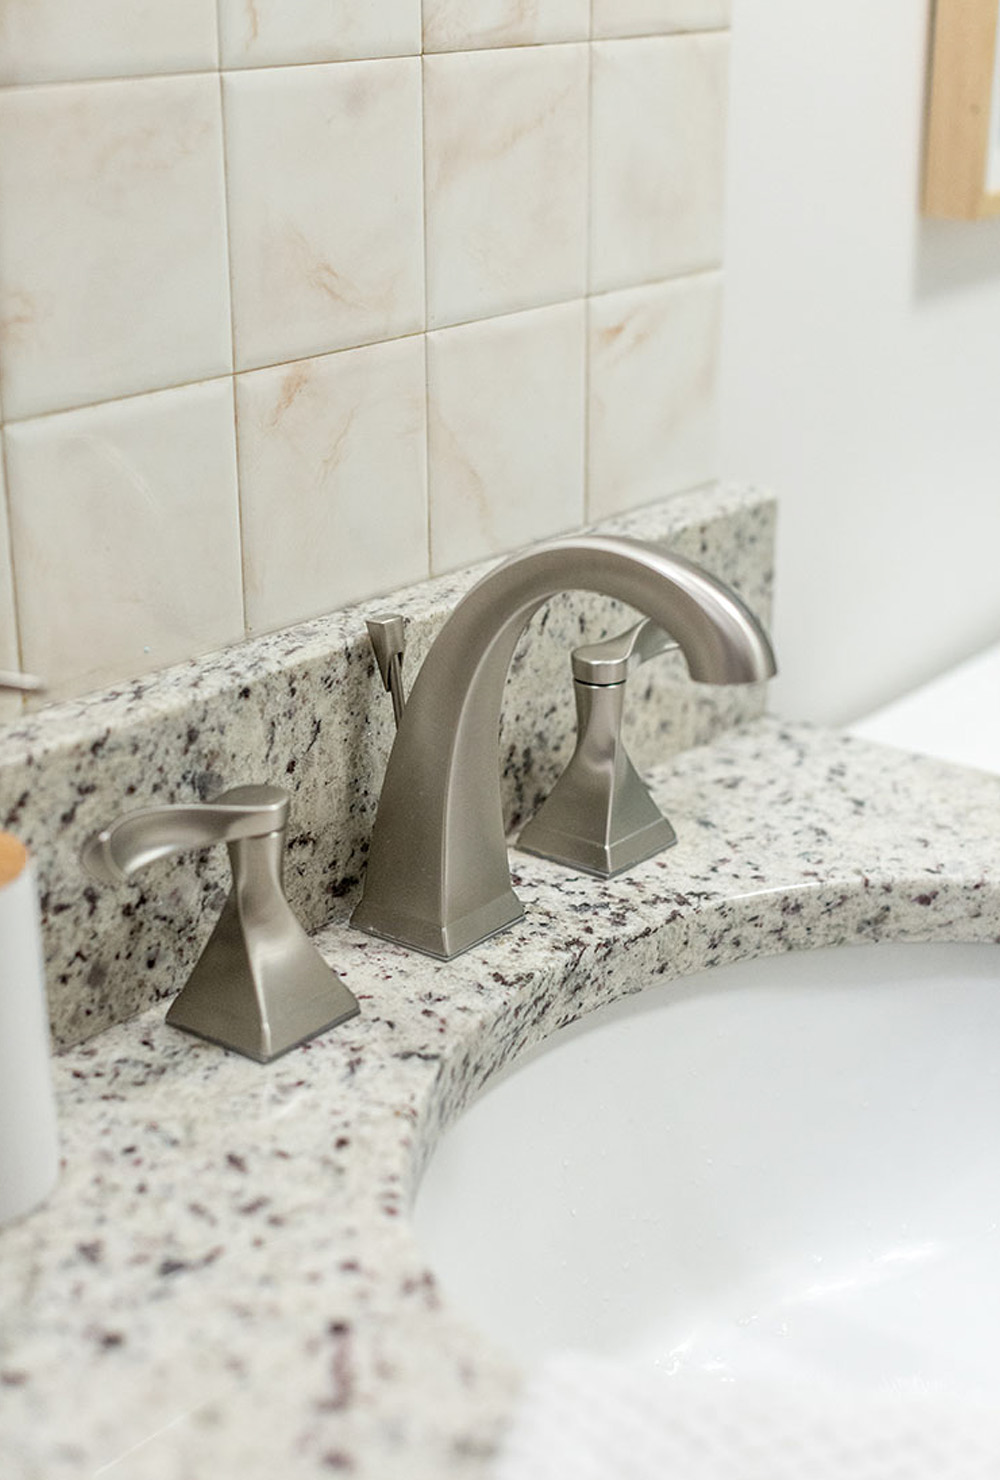 A marble countertop with silver sink faucet against a beige tiled wall.